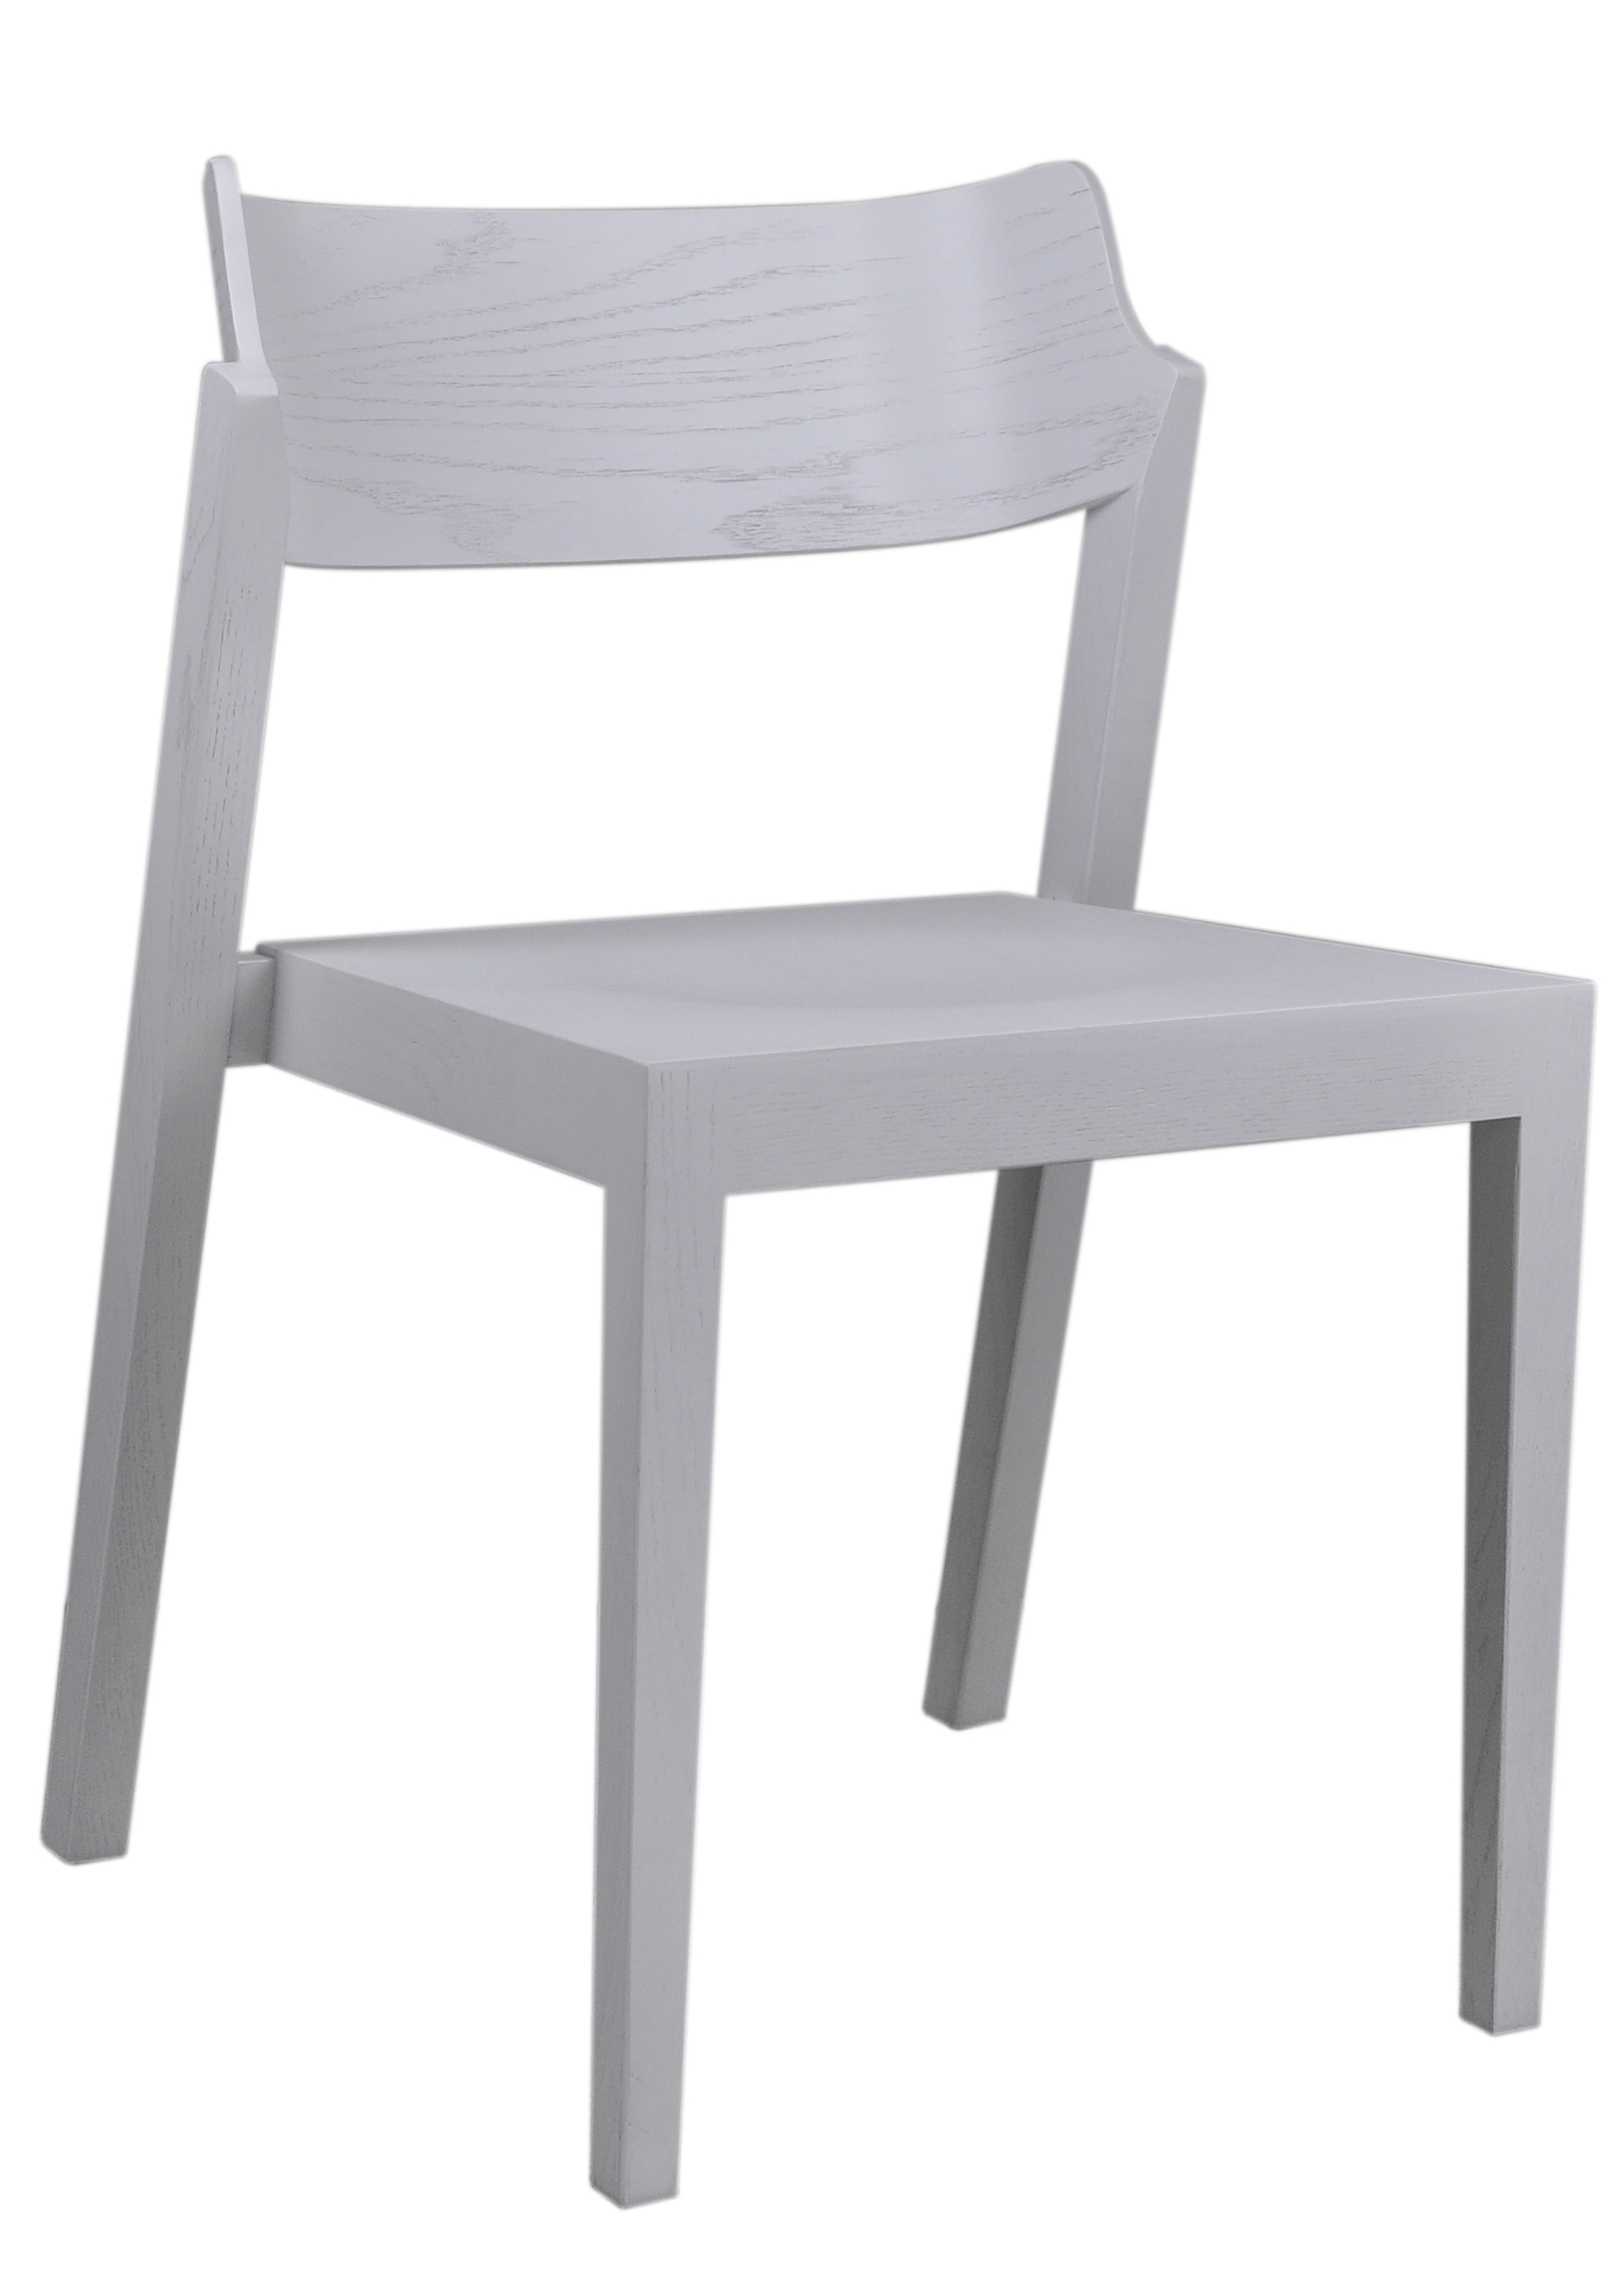 The 100 Chair in white